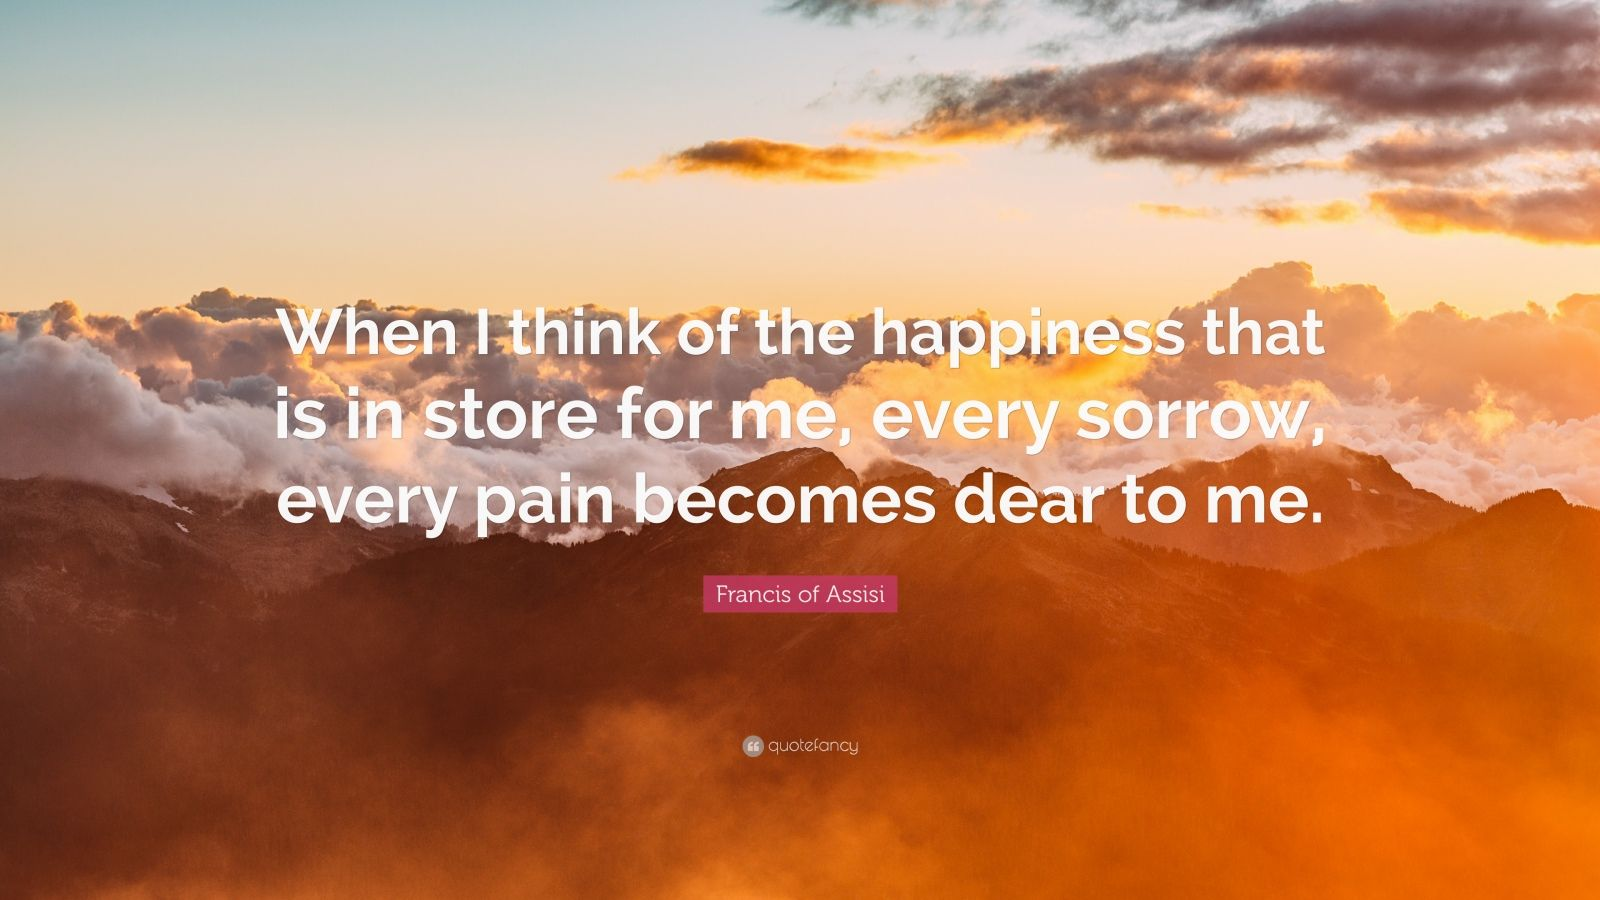 """Francis of Assisi Quote: """"When I think of the happiness that is in store for me, every sorrow, every pain becomes dear to me."""""""